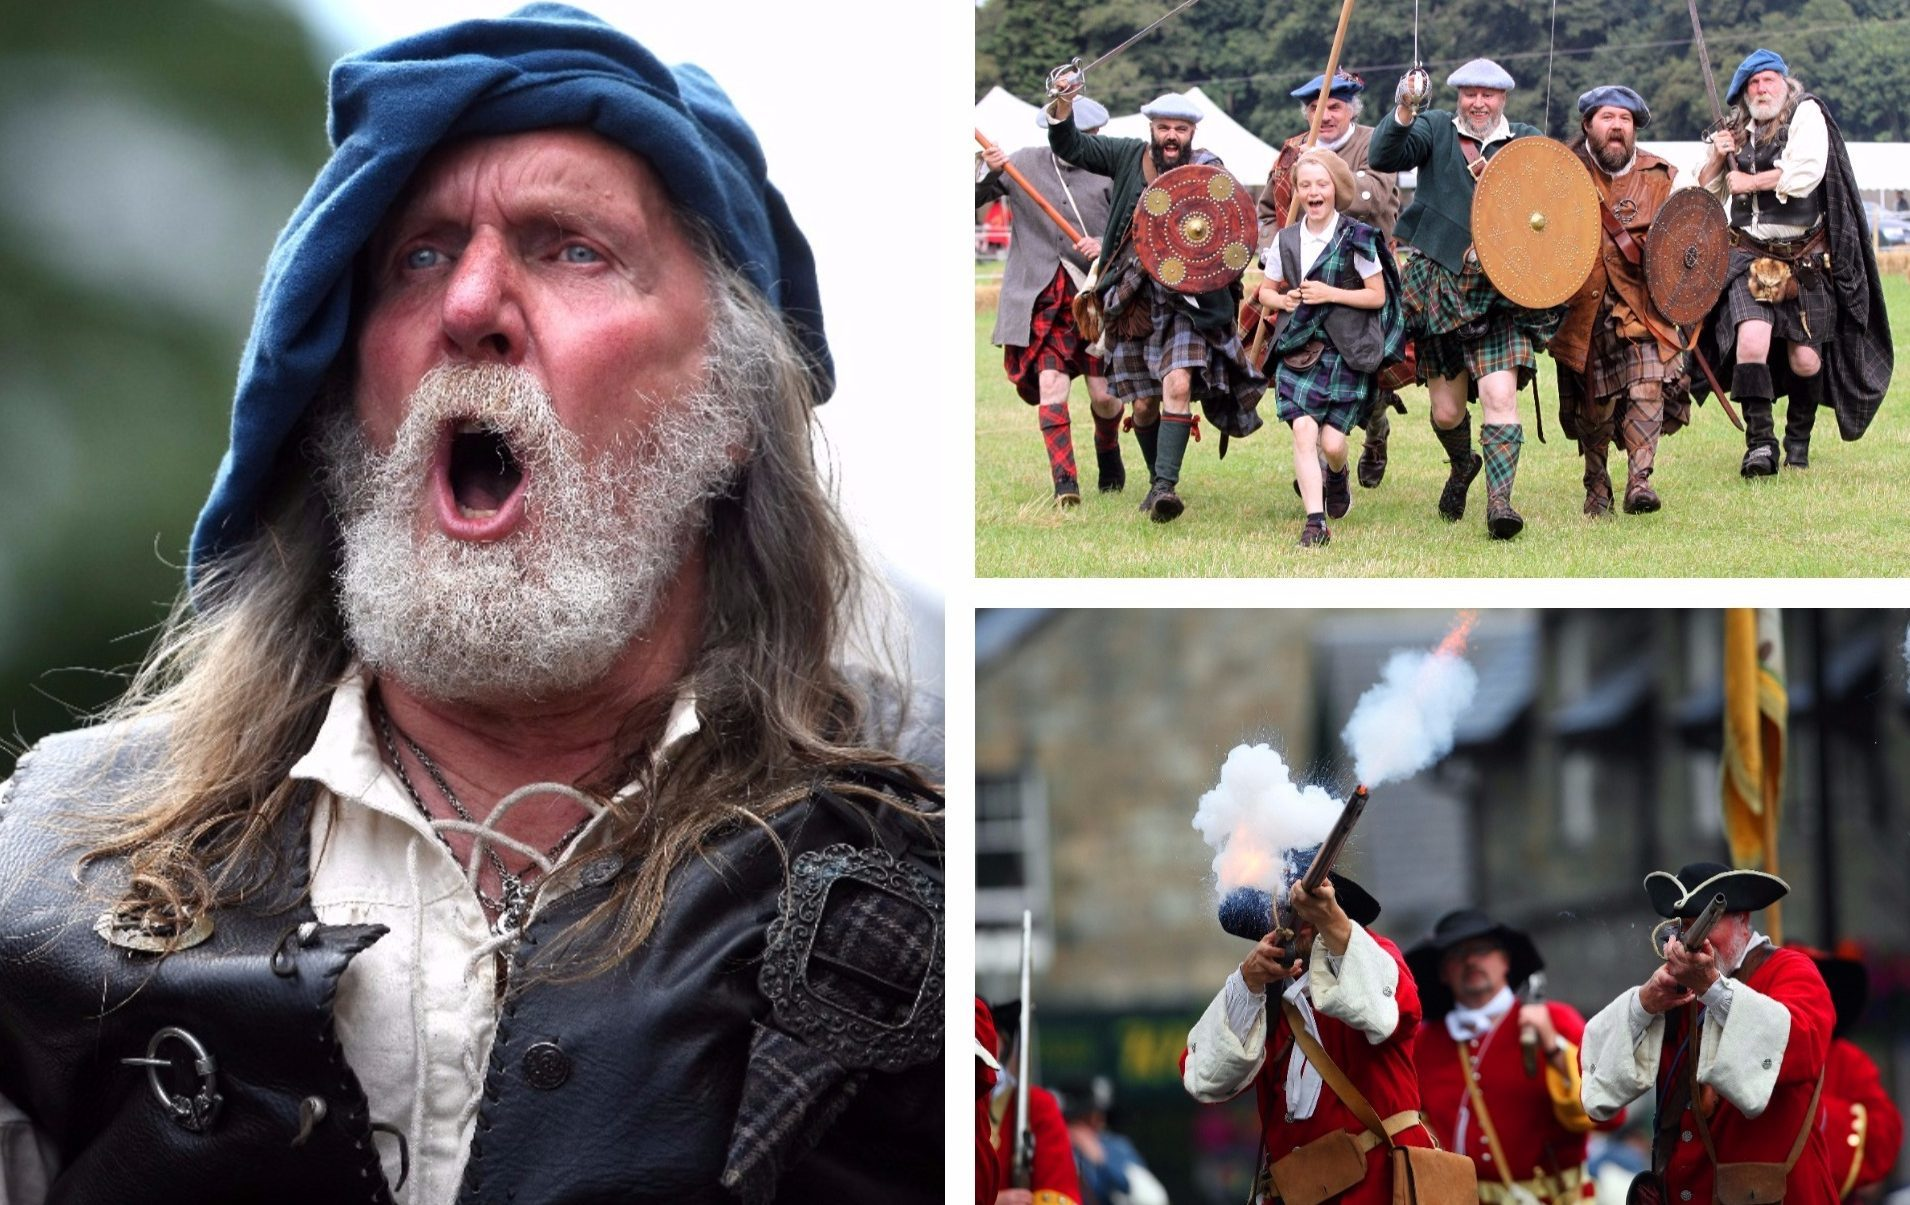 The Battle of Killiecrankie recreated.